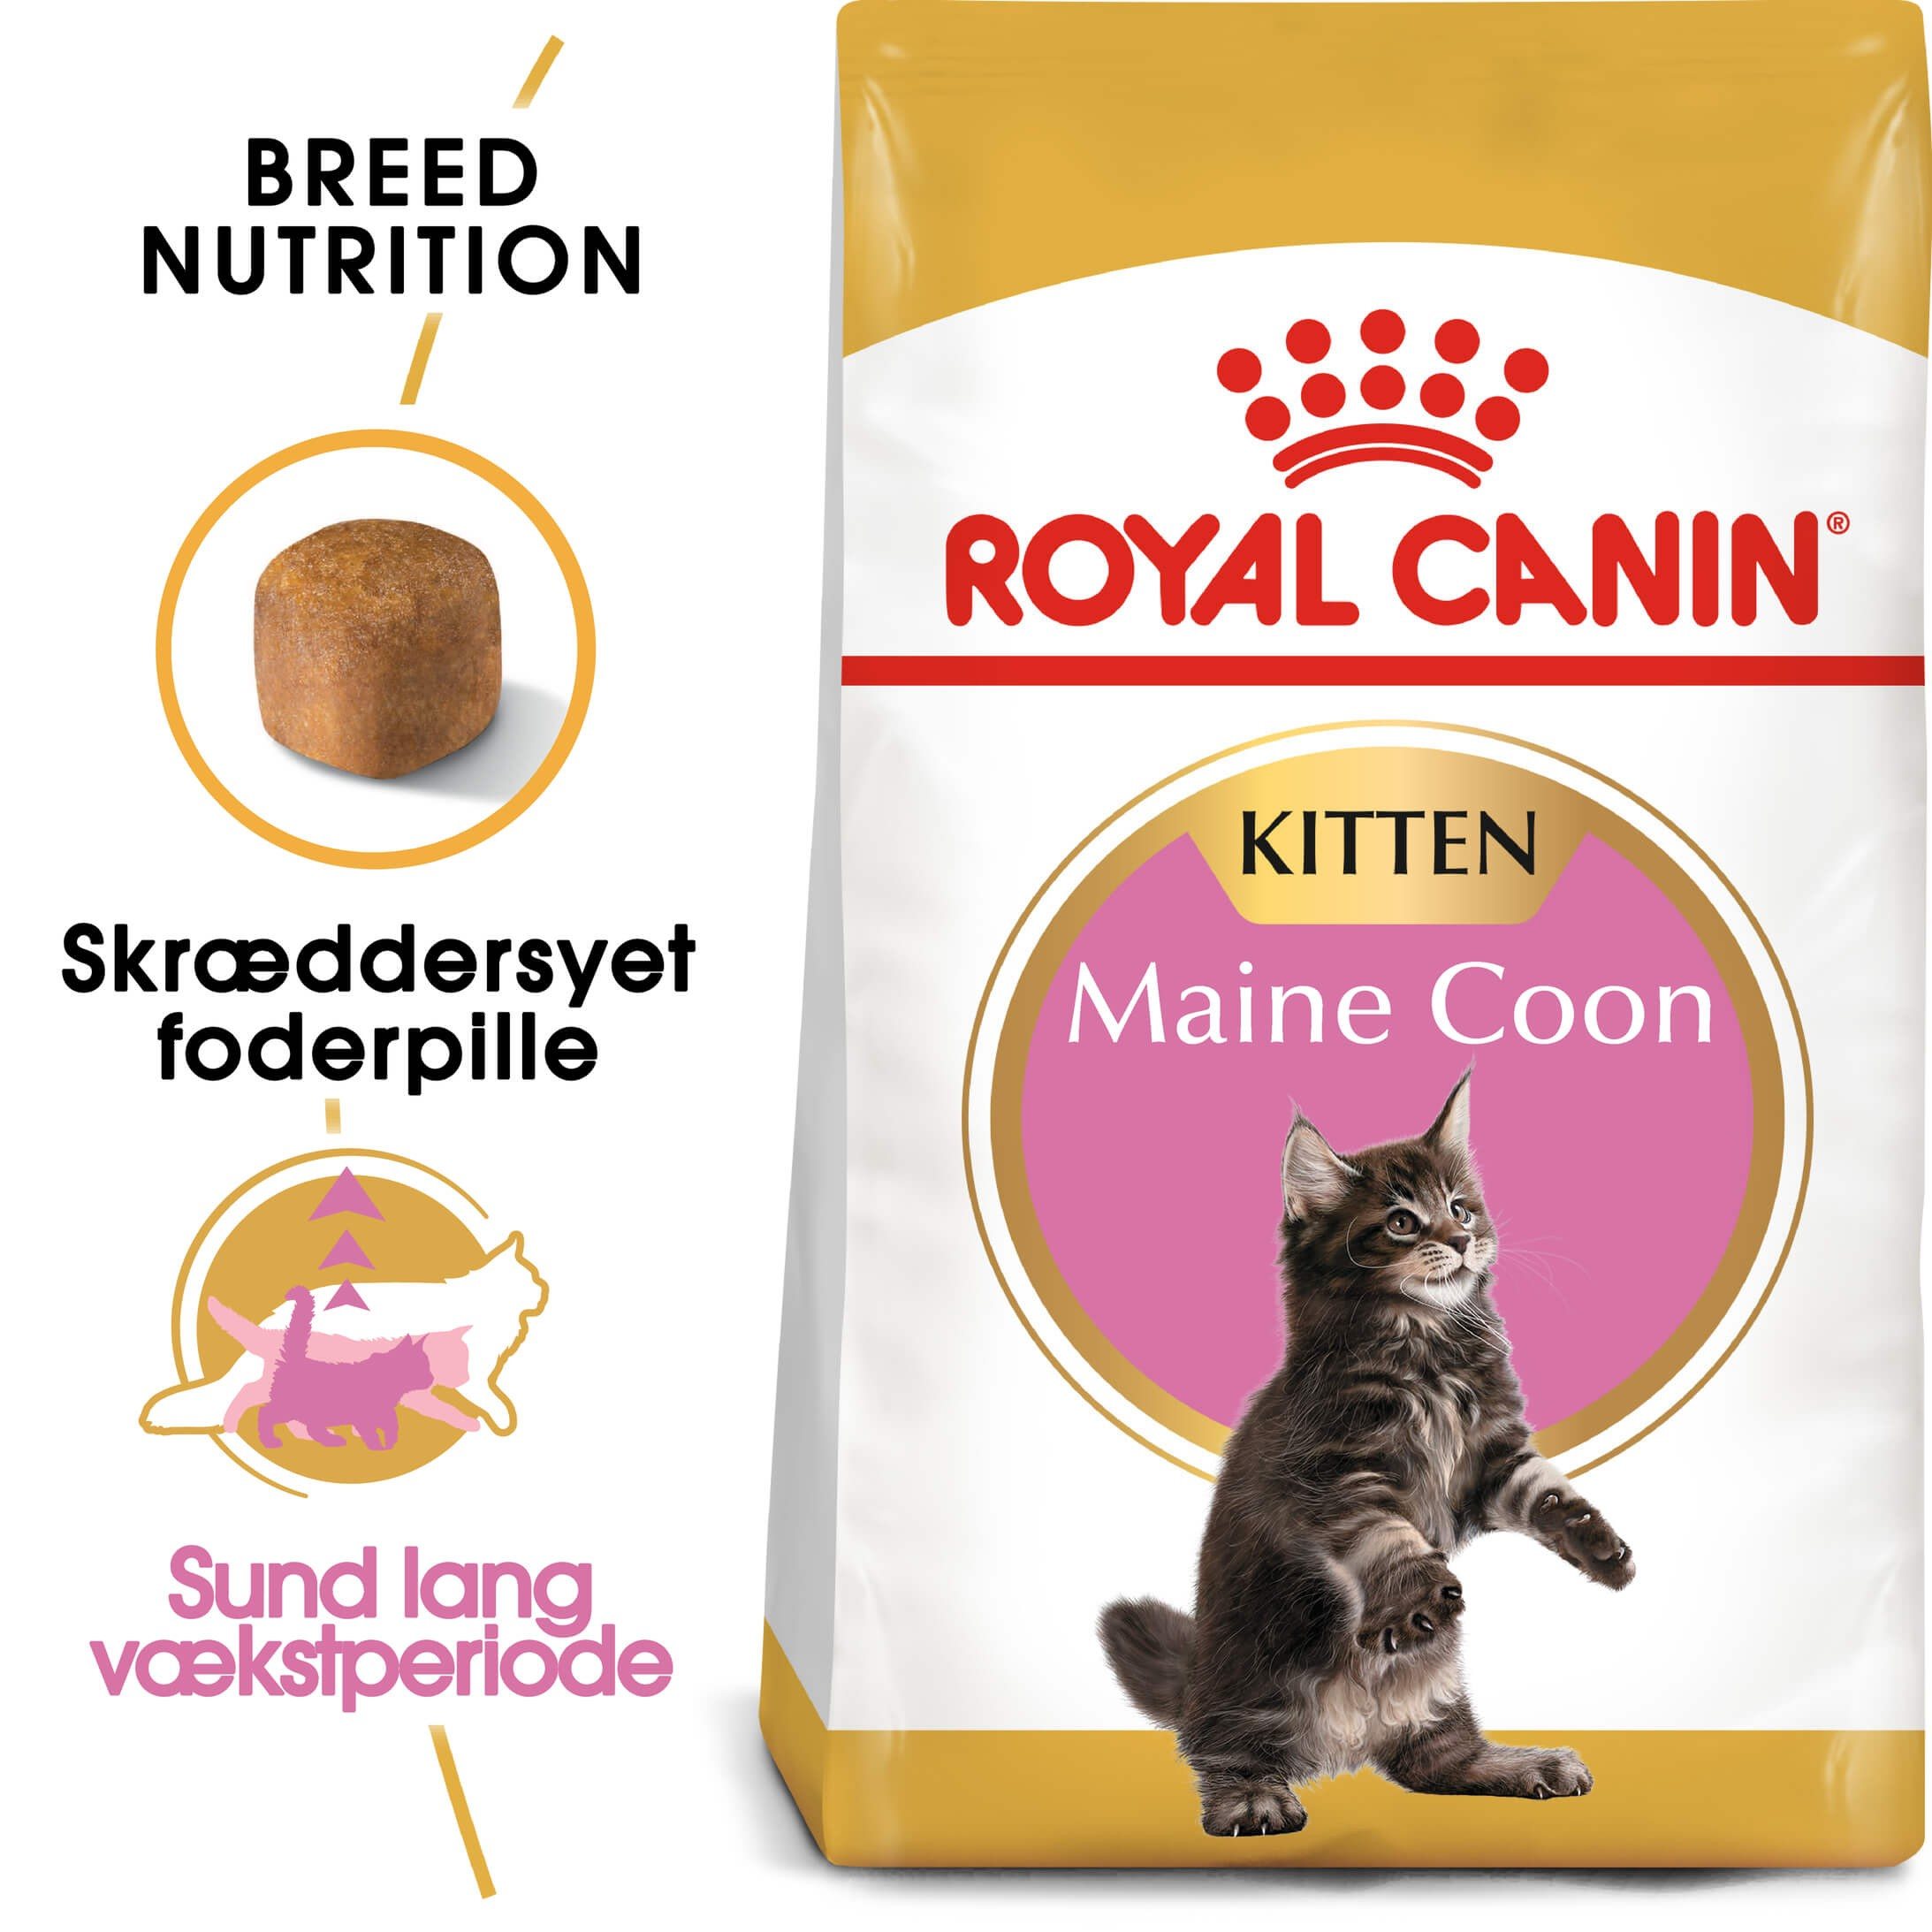 Royal Canin Kitten Maine Coon kattefoder